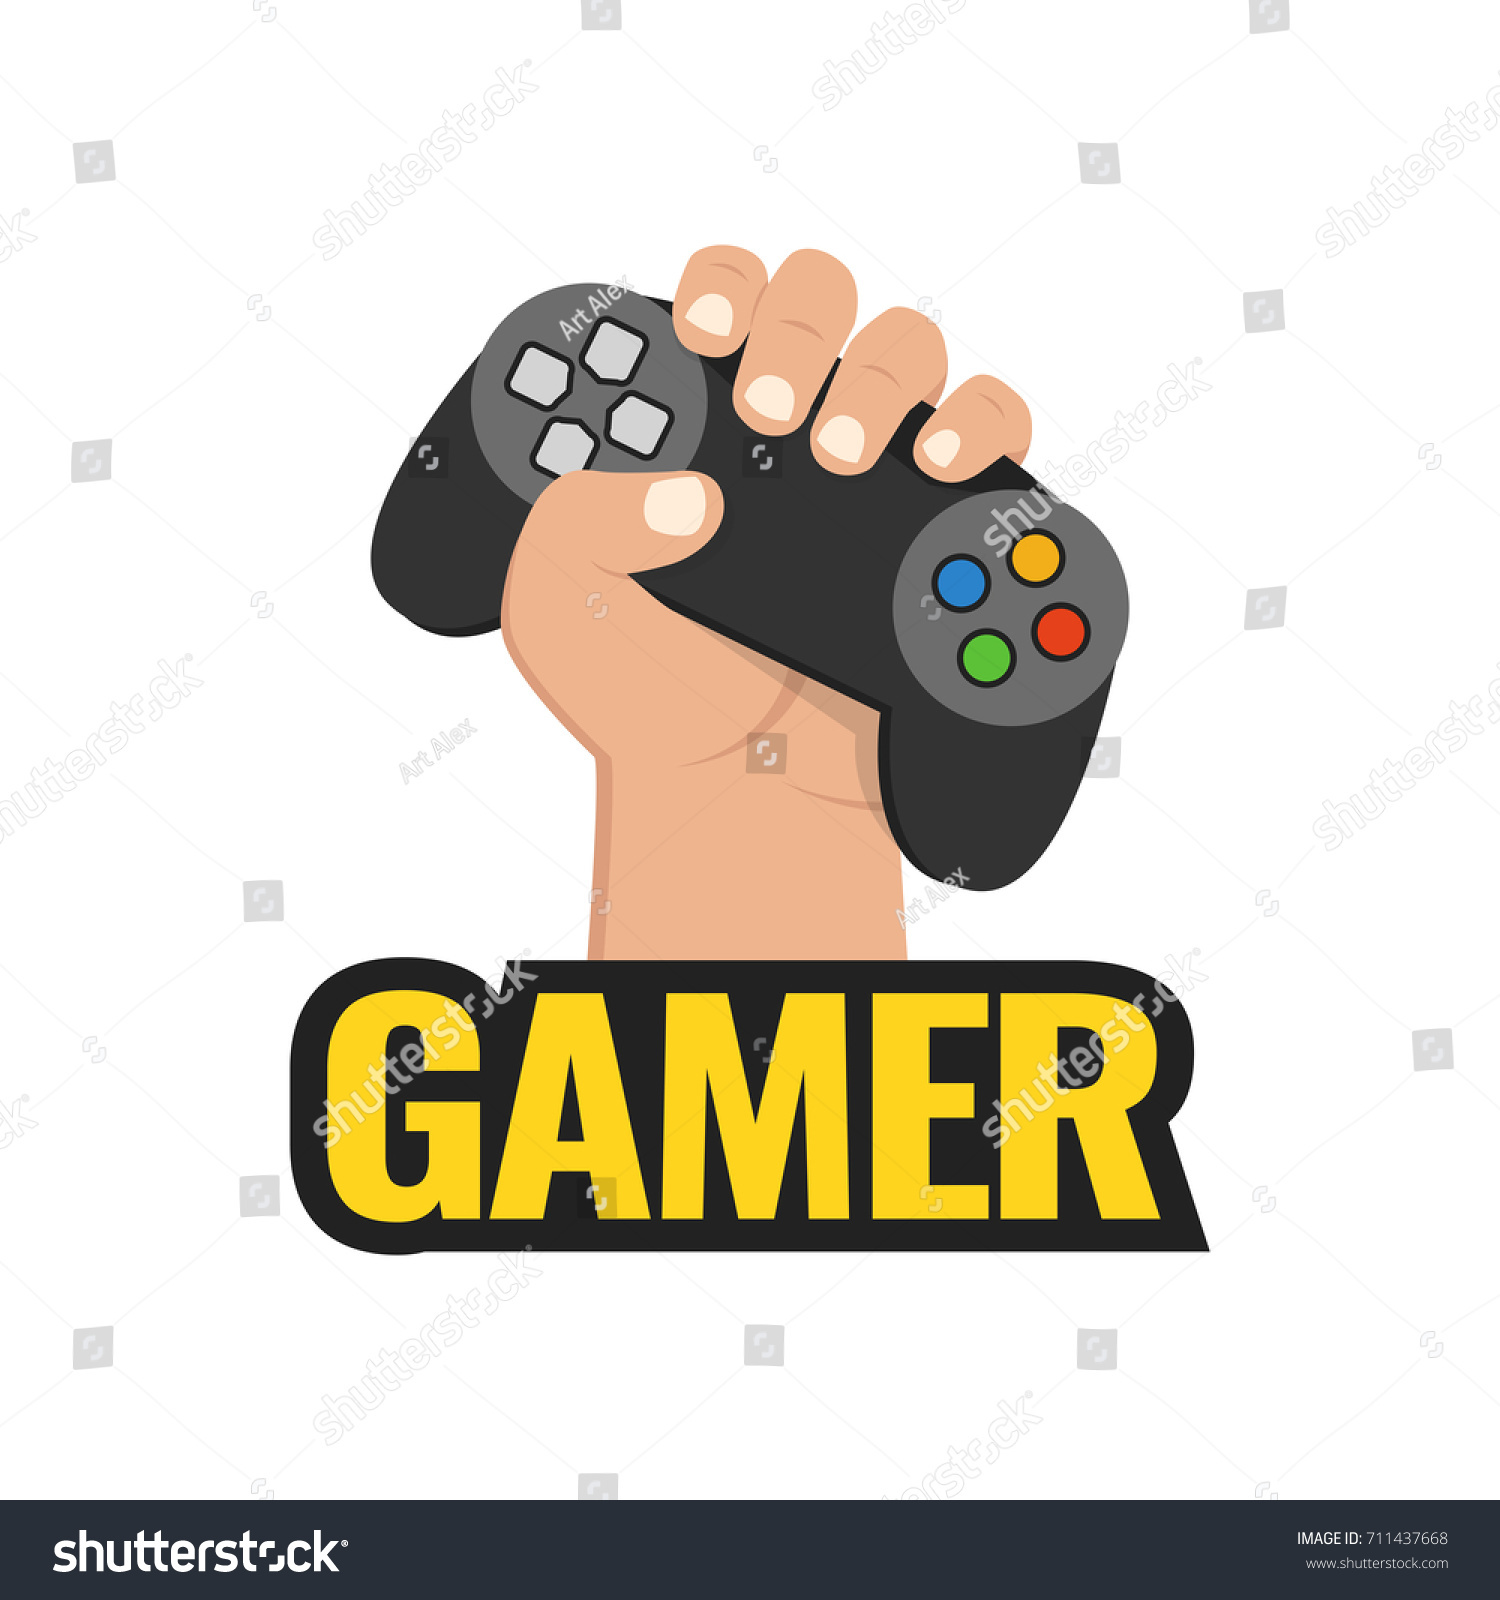 Fist hand with gamer joy stick. Vector illustration.